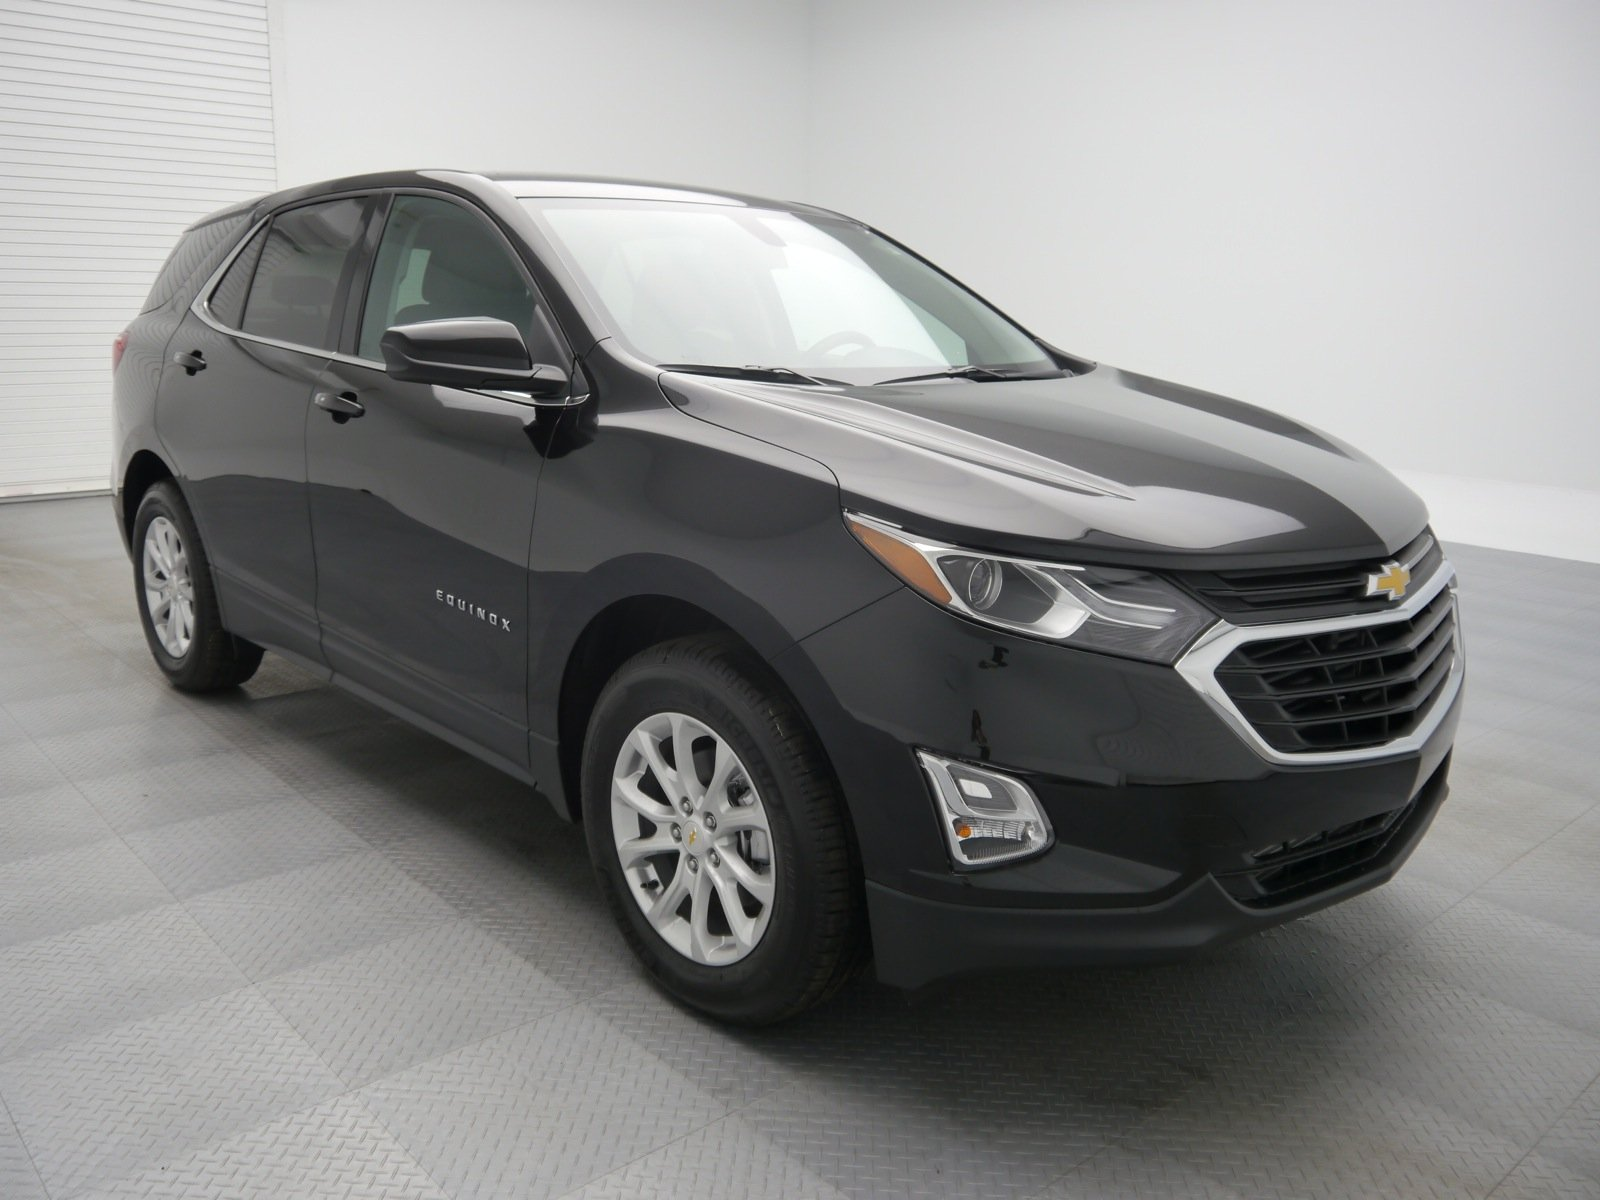 new 2018 chevrolet equinox lt sport utility in chittenango nt81016 sun chevrolet. Black Bedroom Furniture Sets. Home Design Ideas